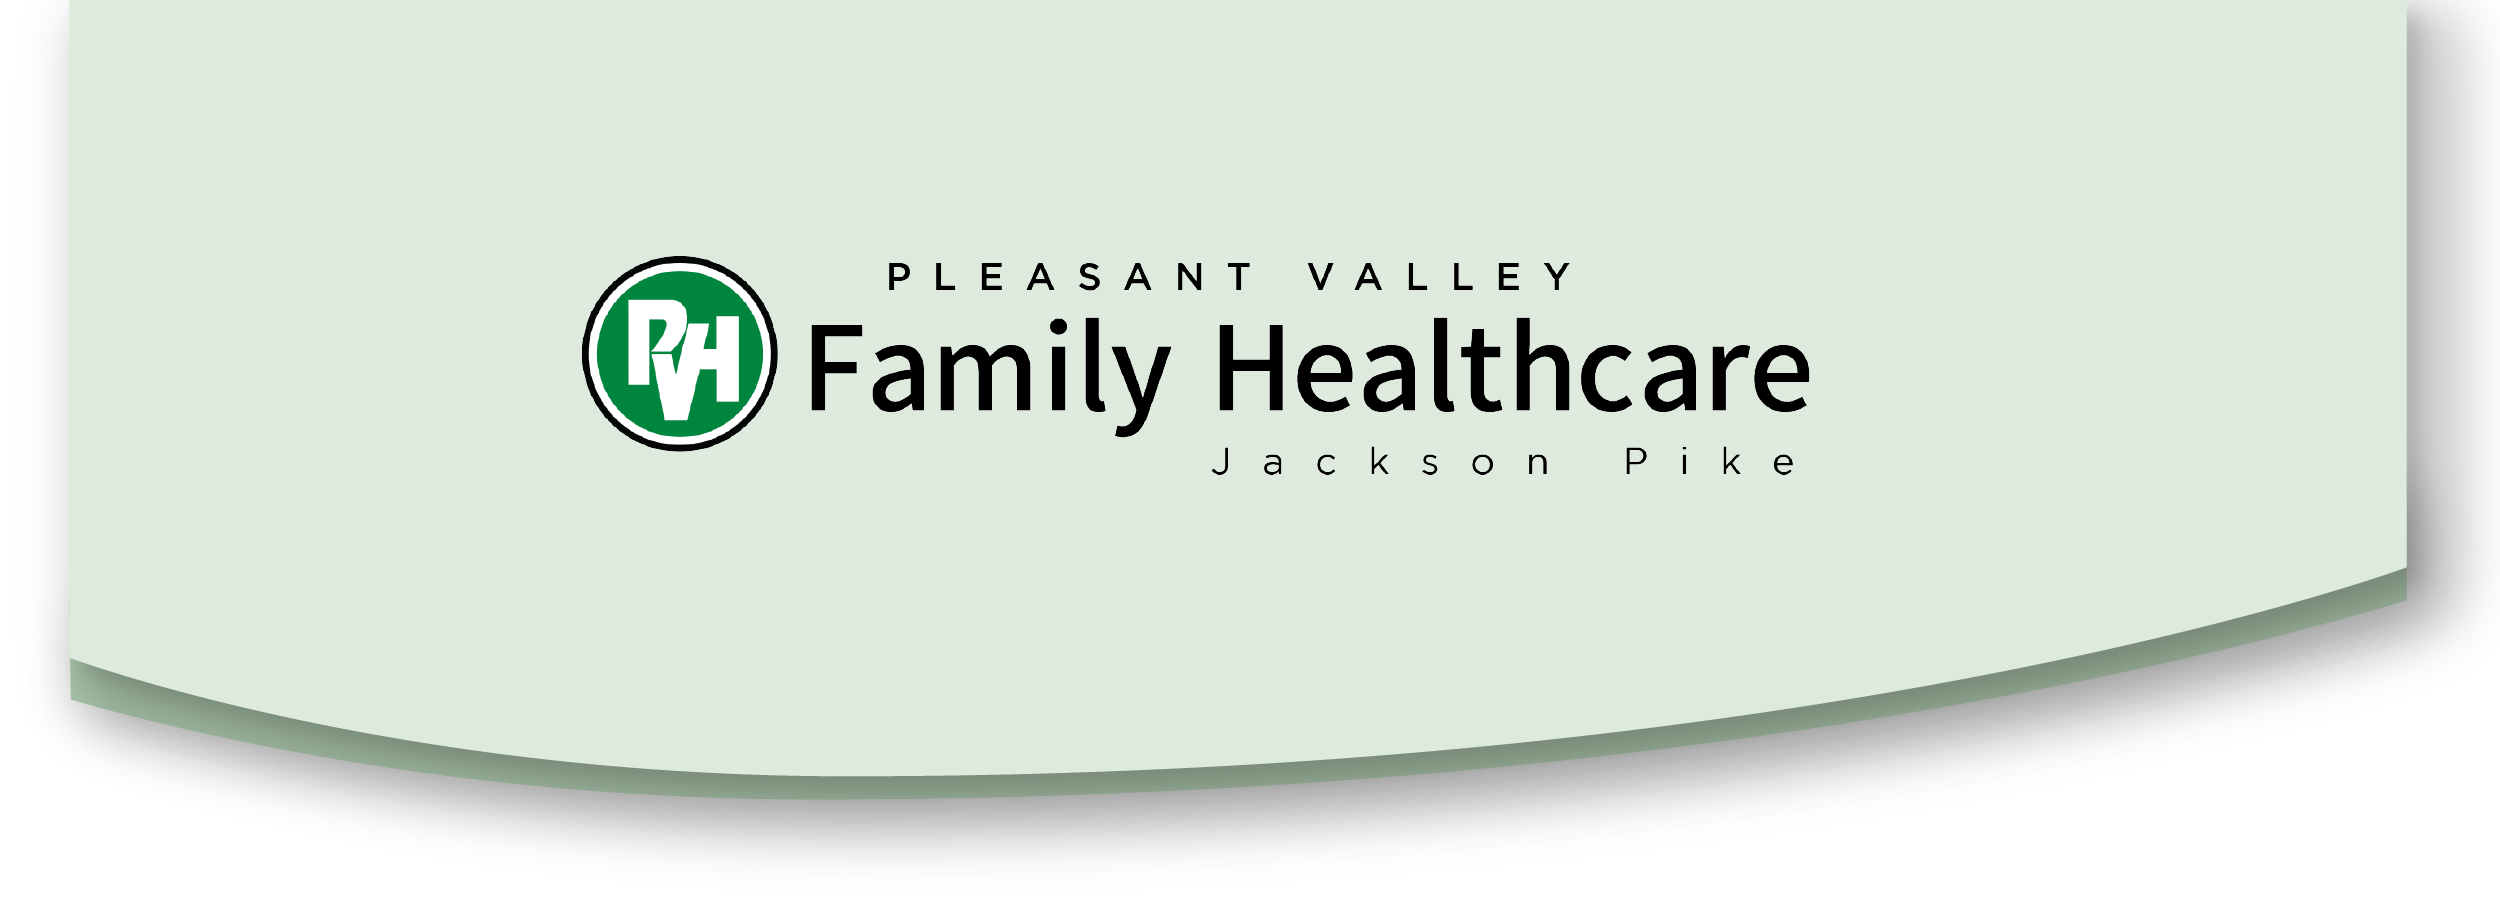 Pleasant Valley Family Healthcare Jackson Pike